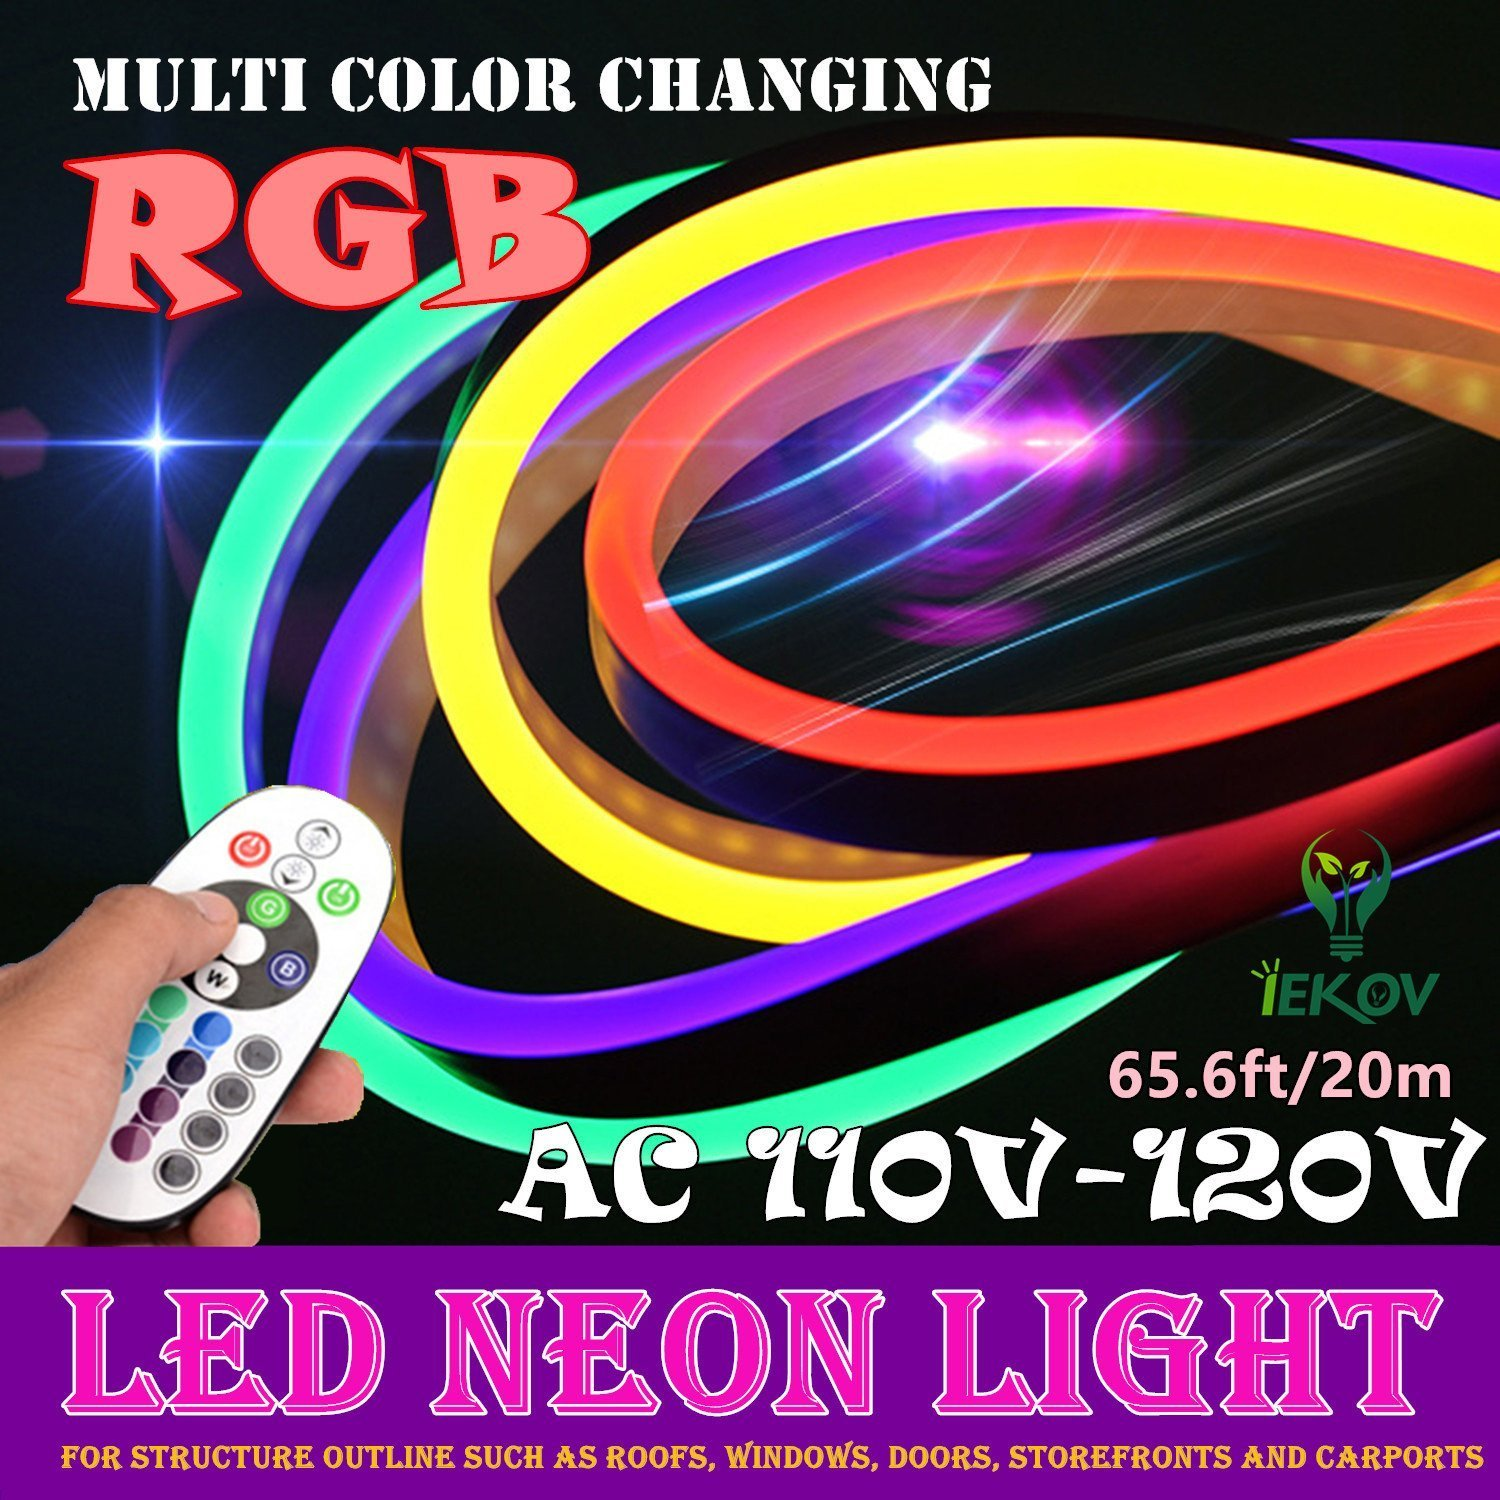 LED NEON LIGHT, IEKOV AC 110-120V Flexible RGB LED Neon Light Strip, 60 LEDs/M, Waterproof, Multi Color Changing 5050 SMD LED Rope Light + Remote Controller for Party Decoration (65.6ft/ 20m) by IEKOV